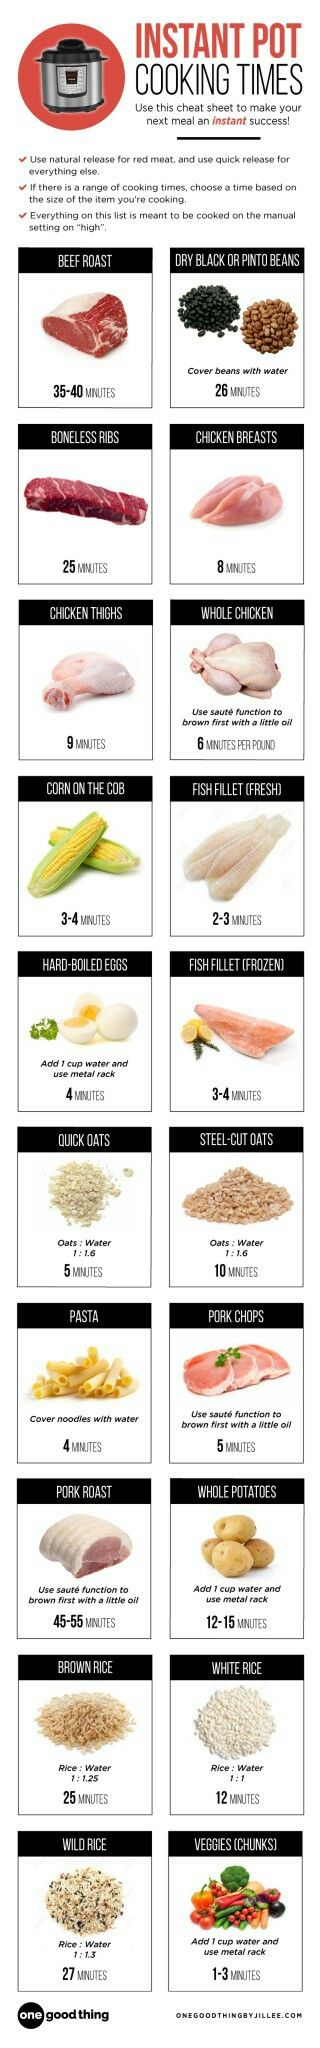 Cooking times for instant pot